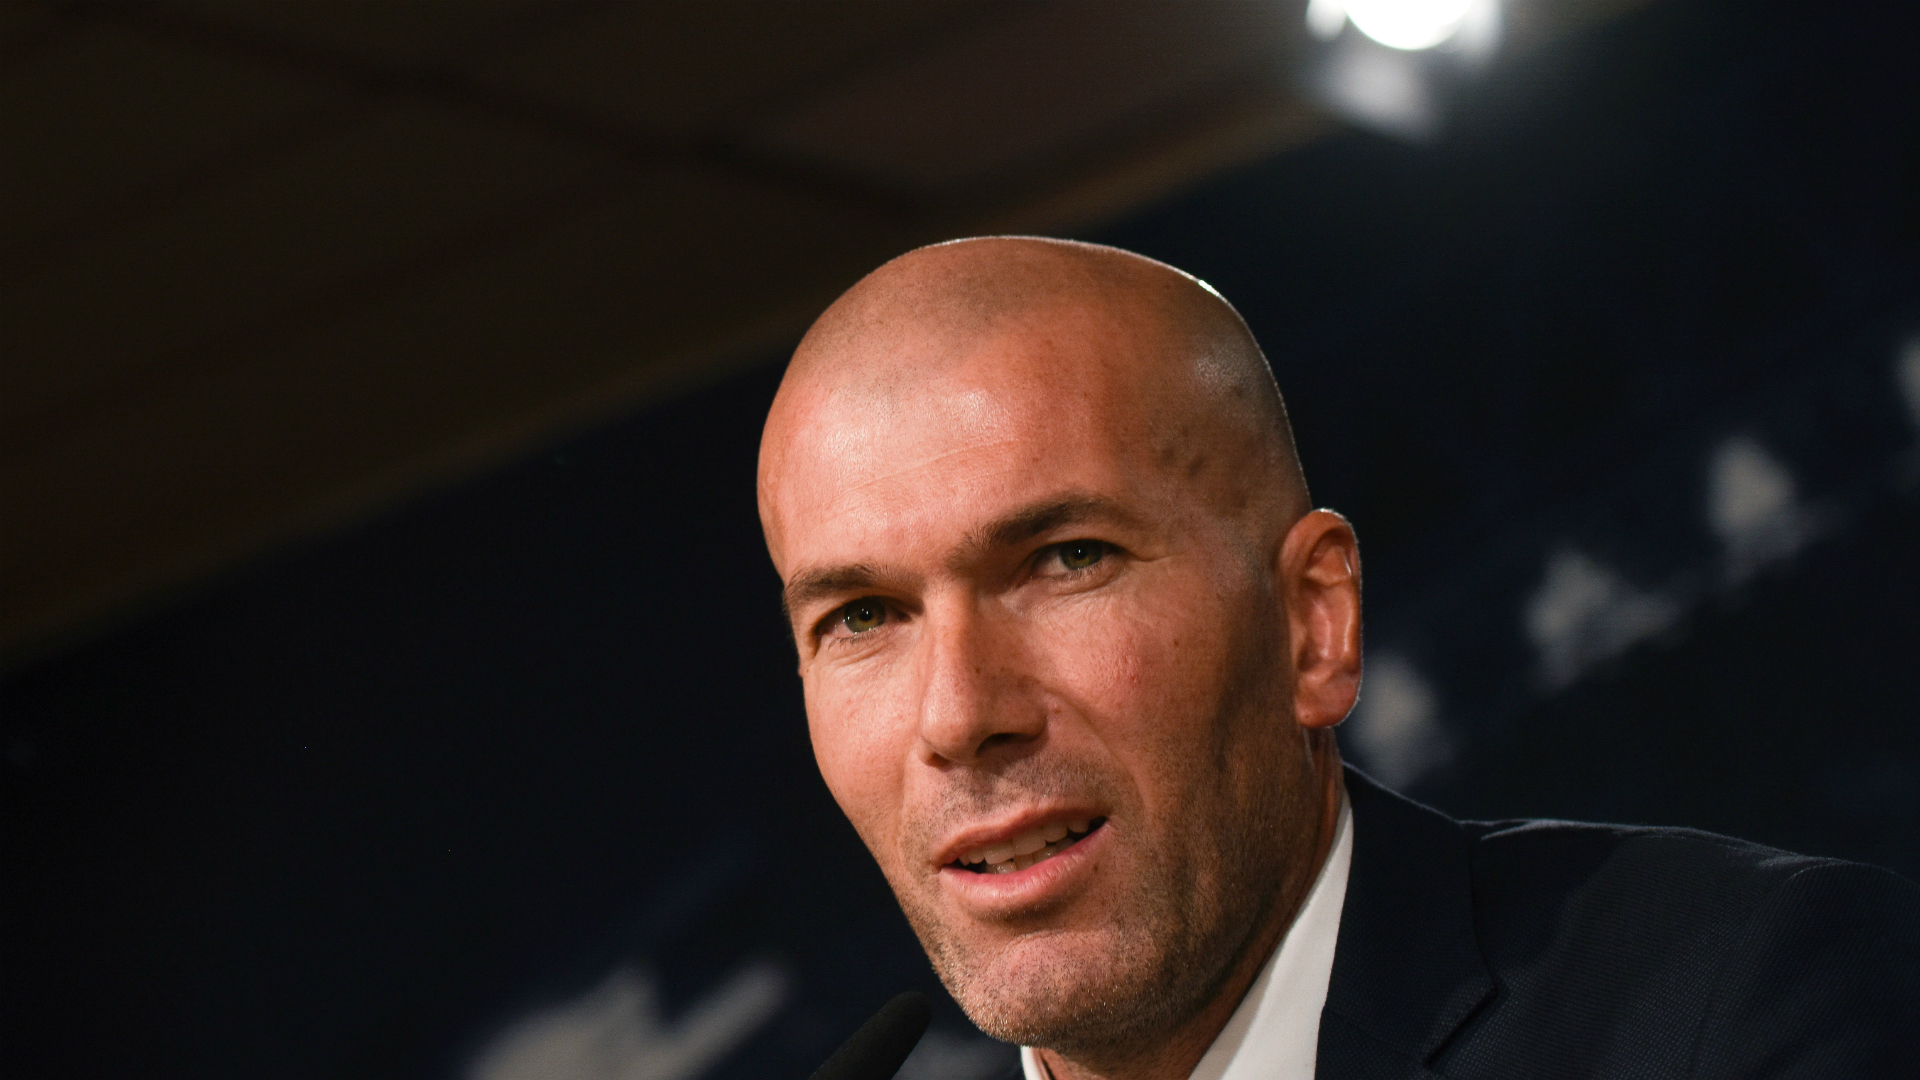 Zidane brings back feel-good factor, but now the hard work starts at Real Madrid